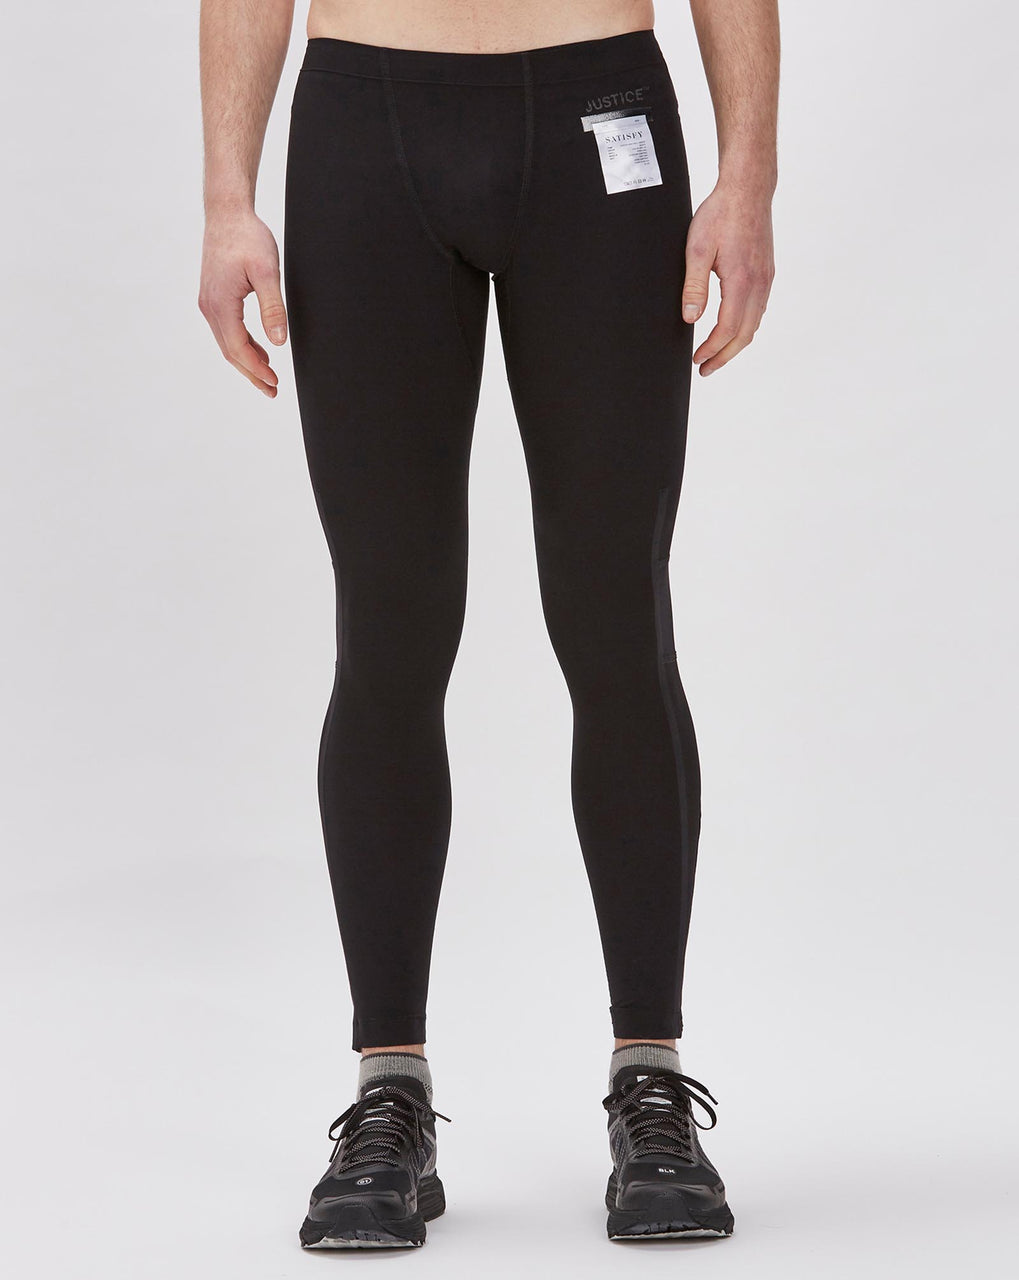 Satisfy Justice Run Away Tights (Black)